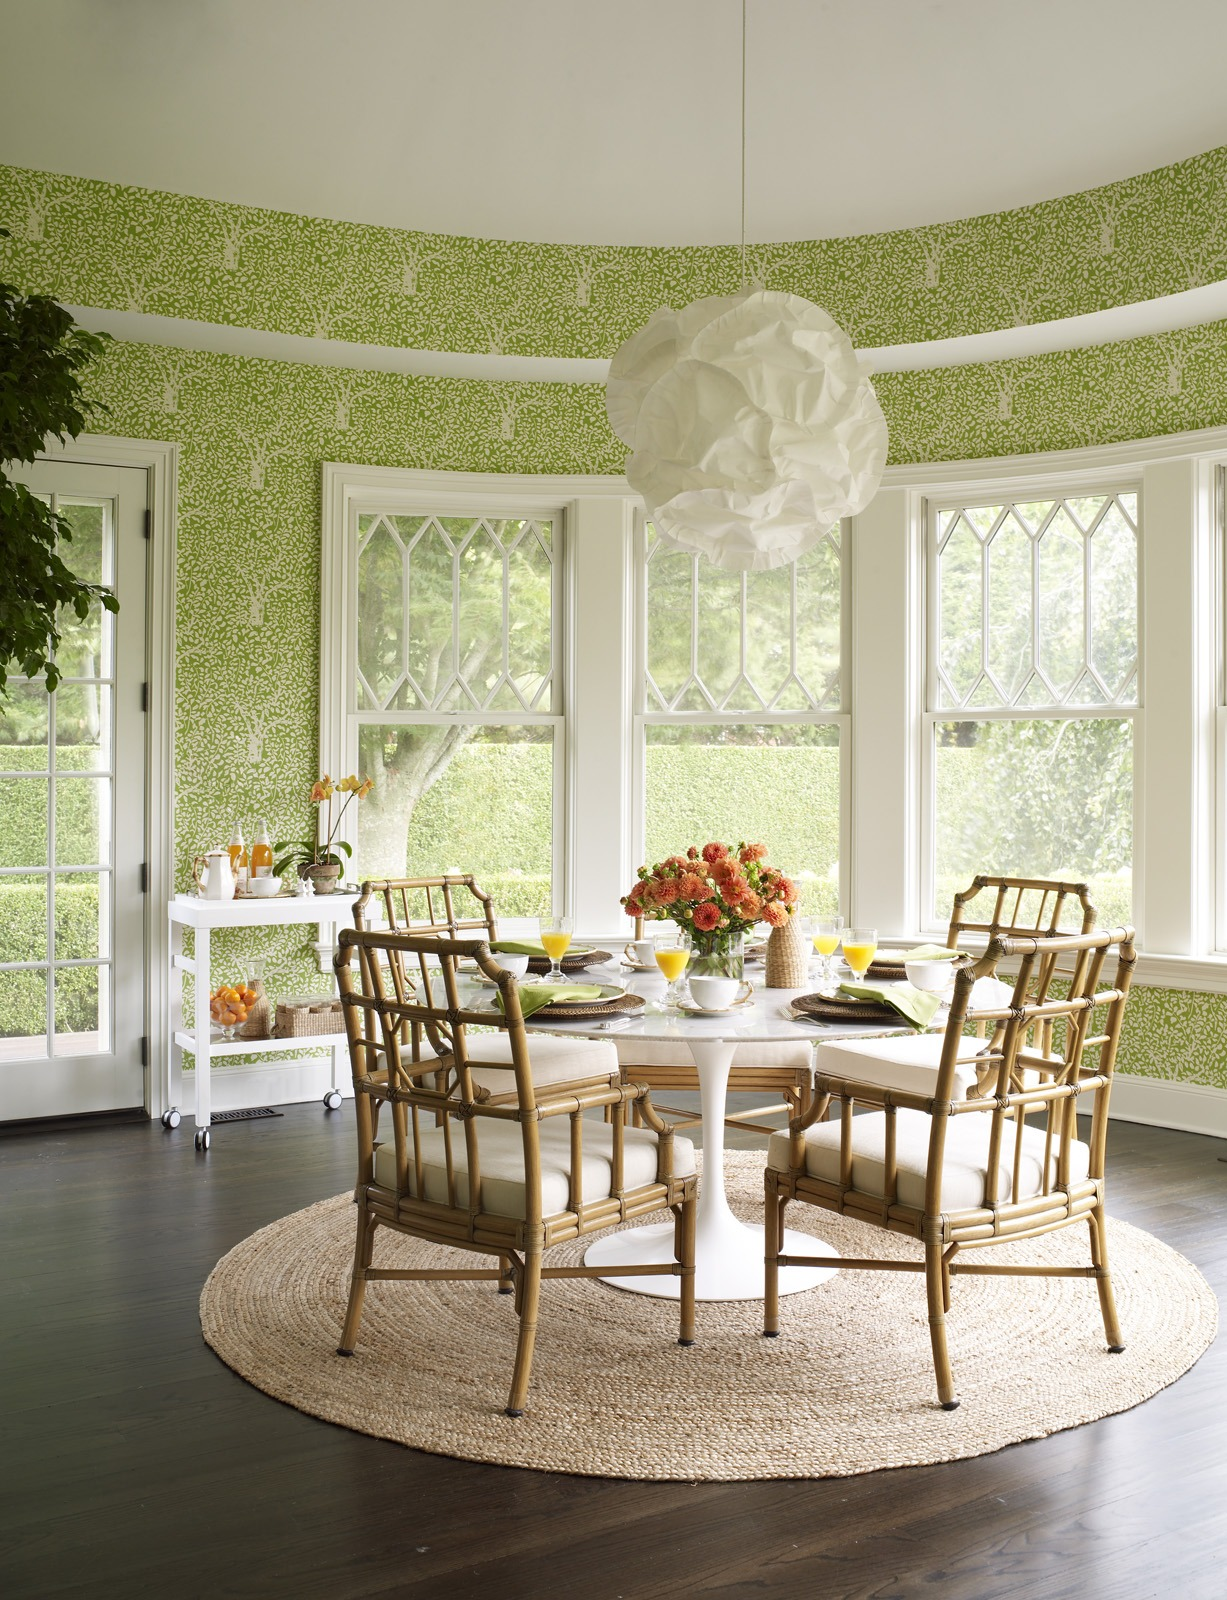 Meg Braff Designs Southampton home breakfast room